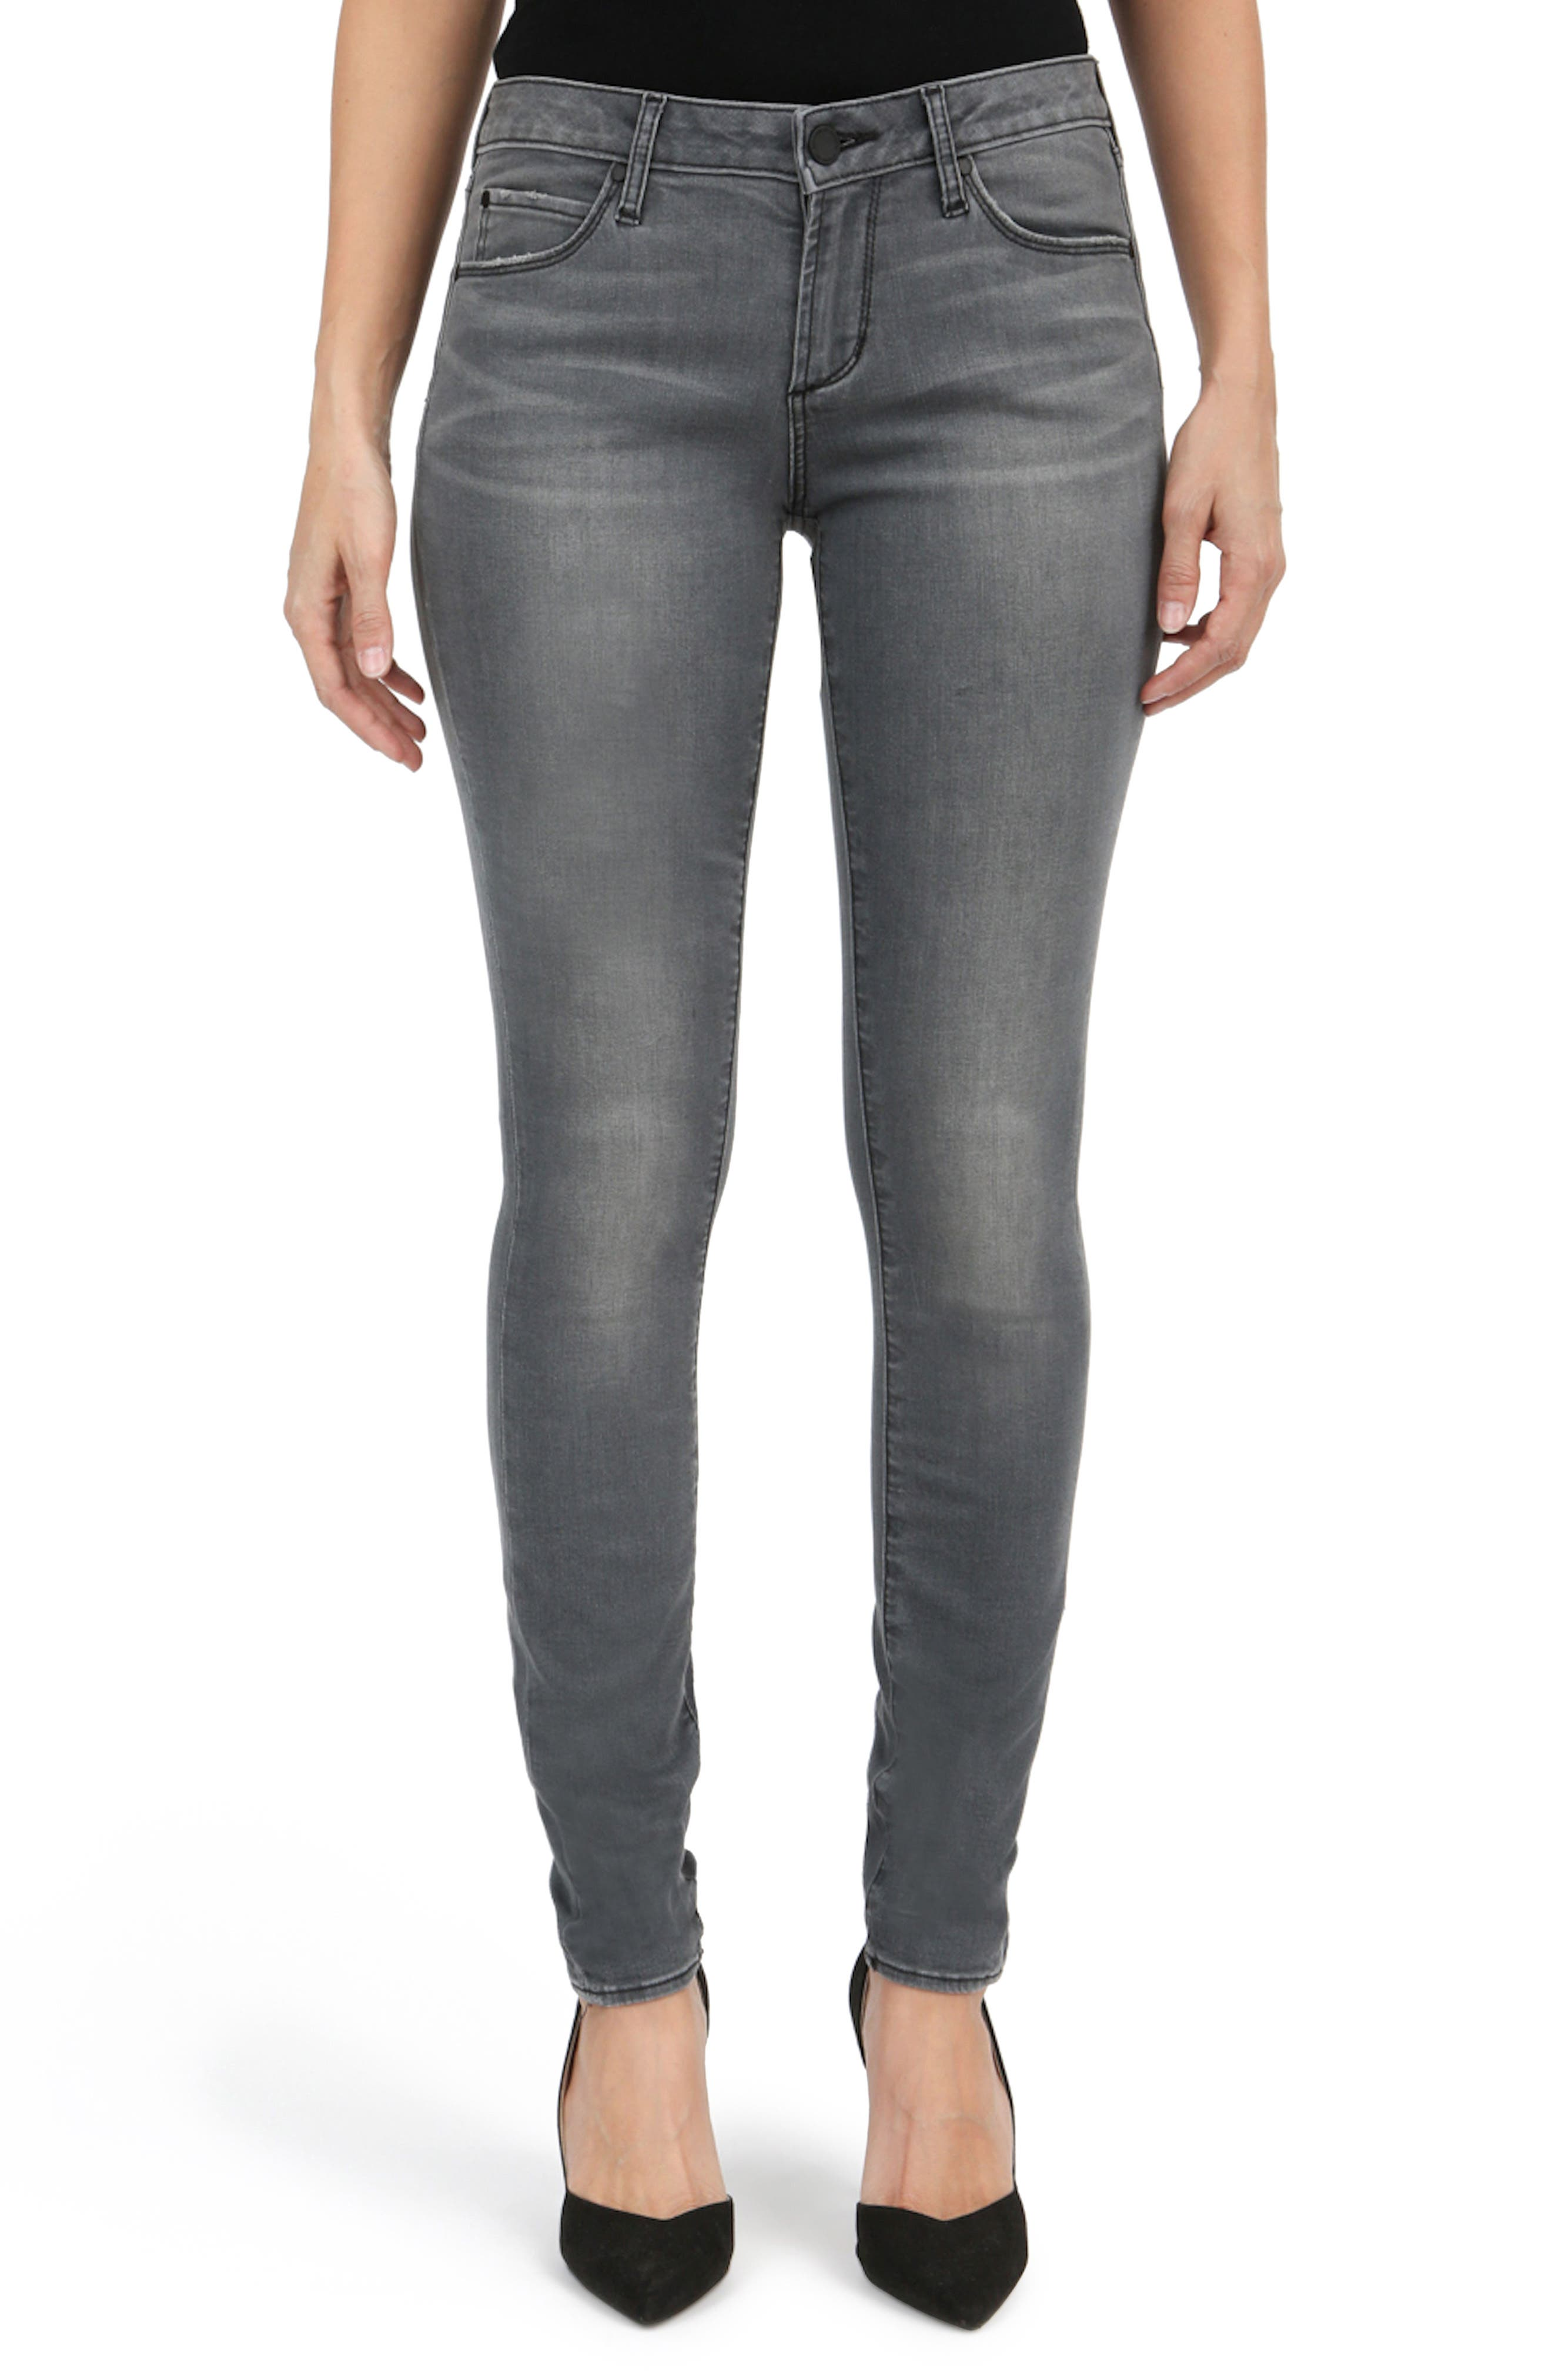 Articles of Society Mya Skinny Jeans (Eagle)